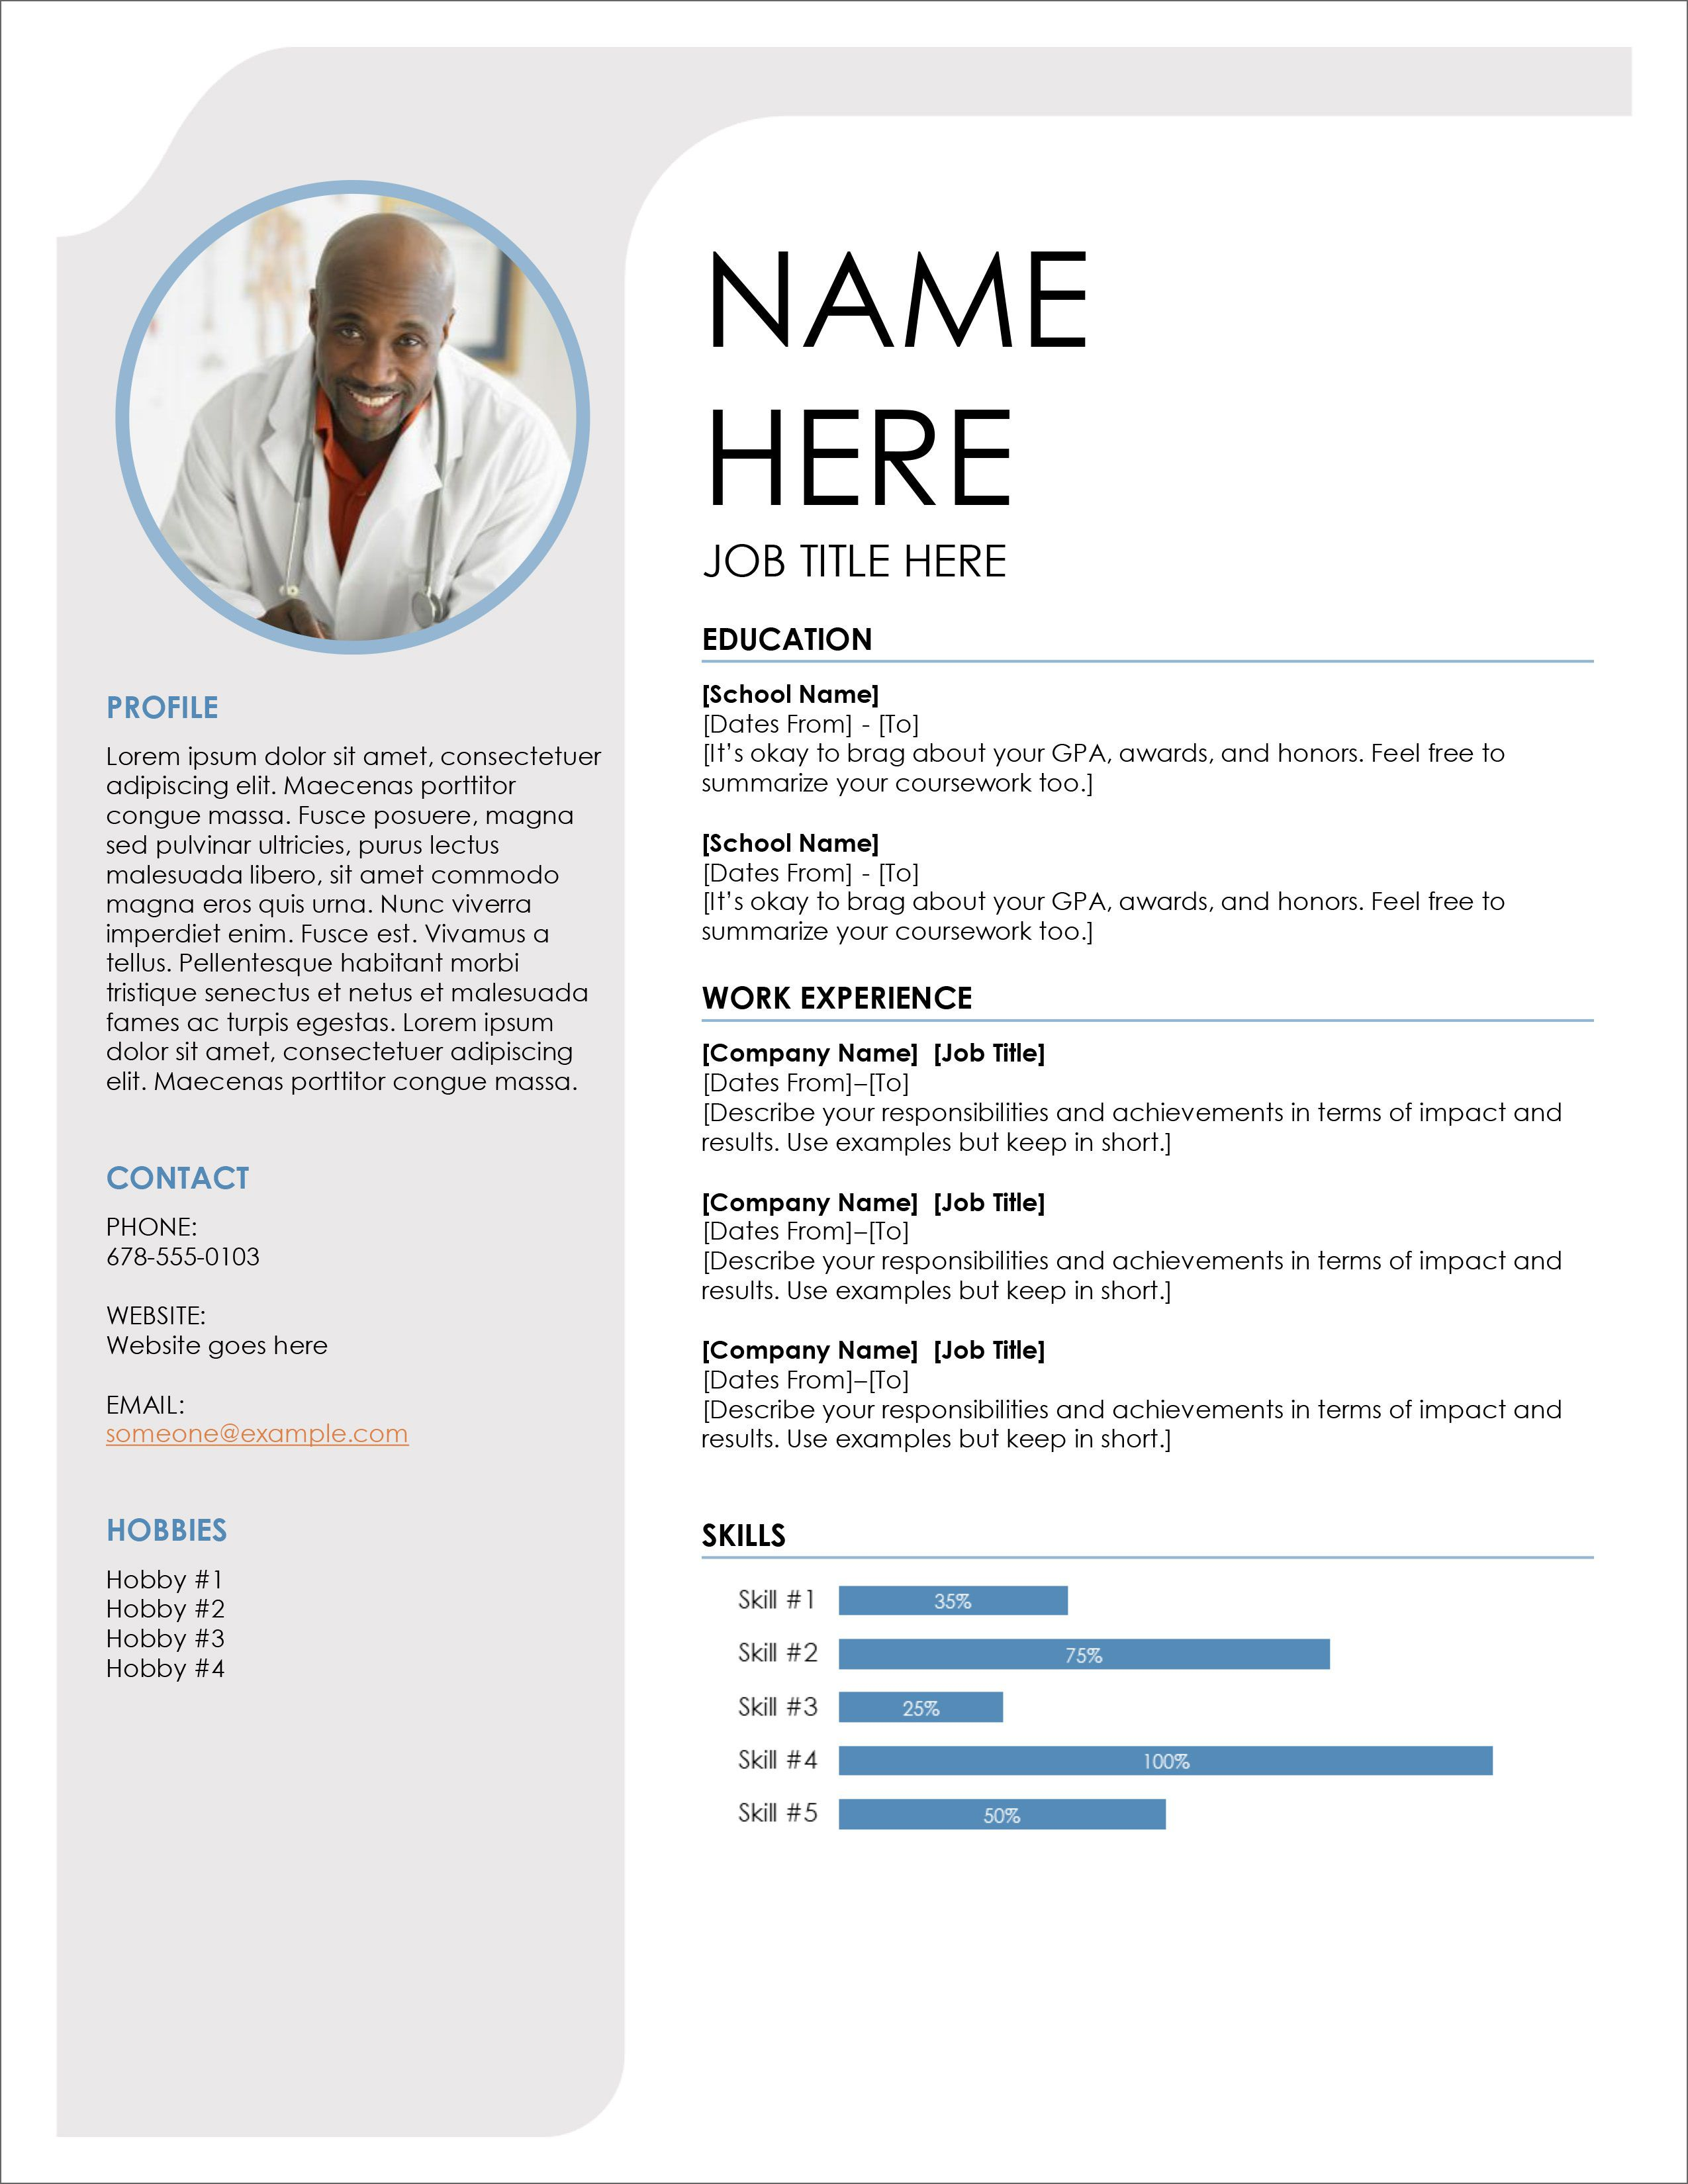 006 Surprising Resume Template For Microsoft Word 2007 Free Image  Download OfficeFull